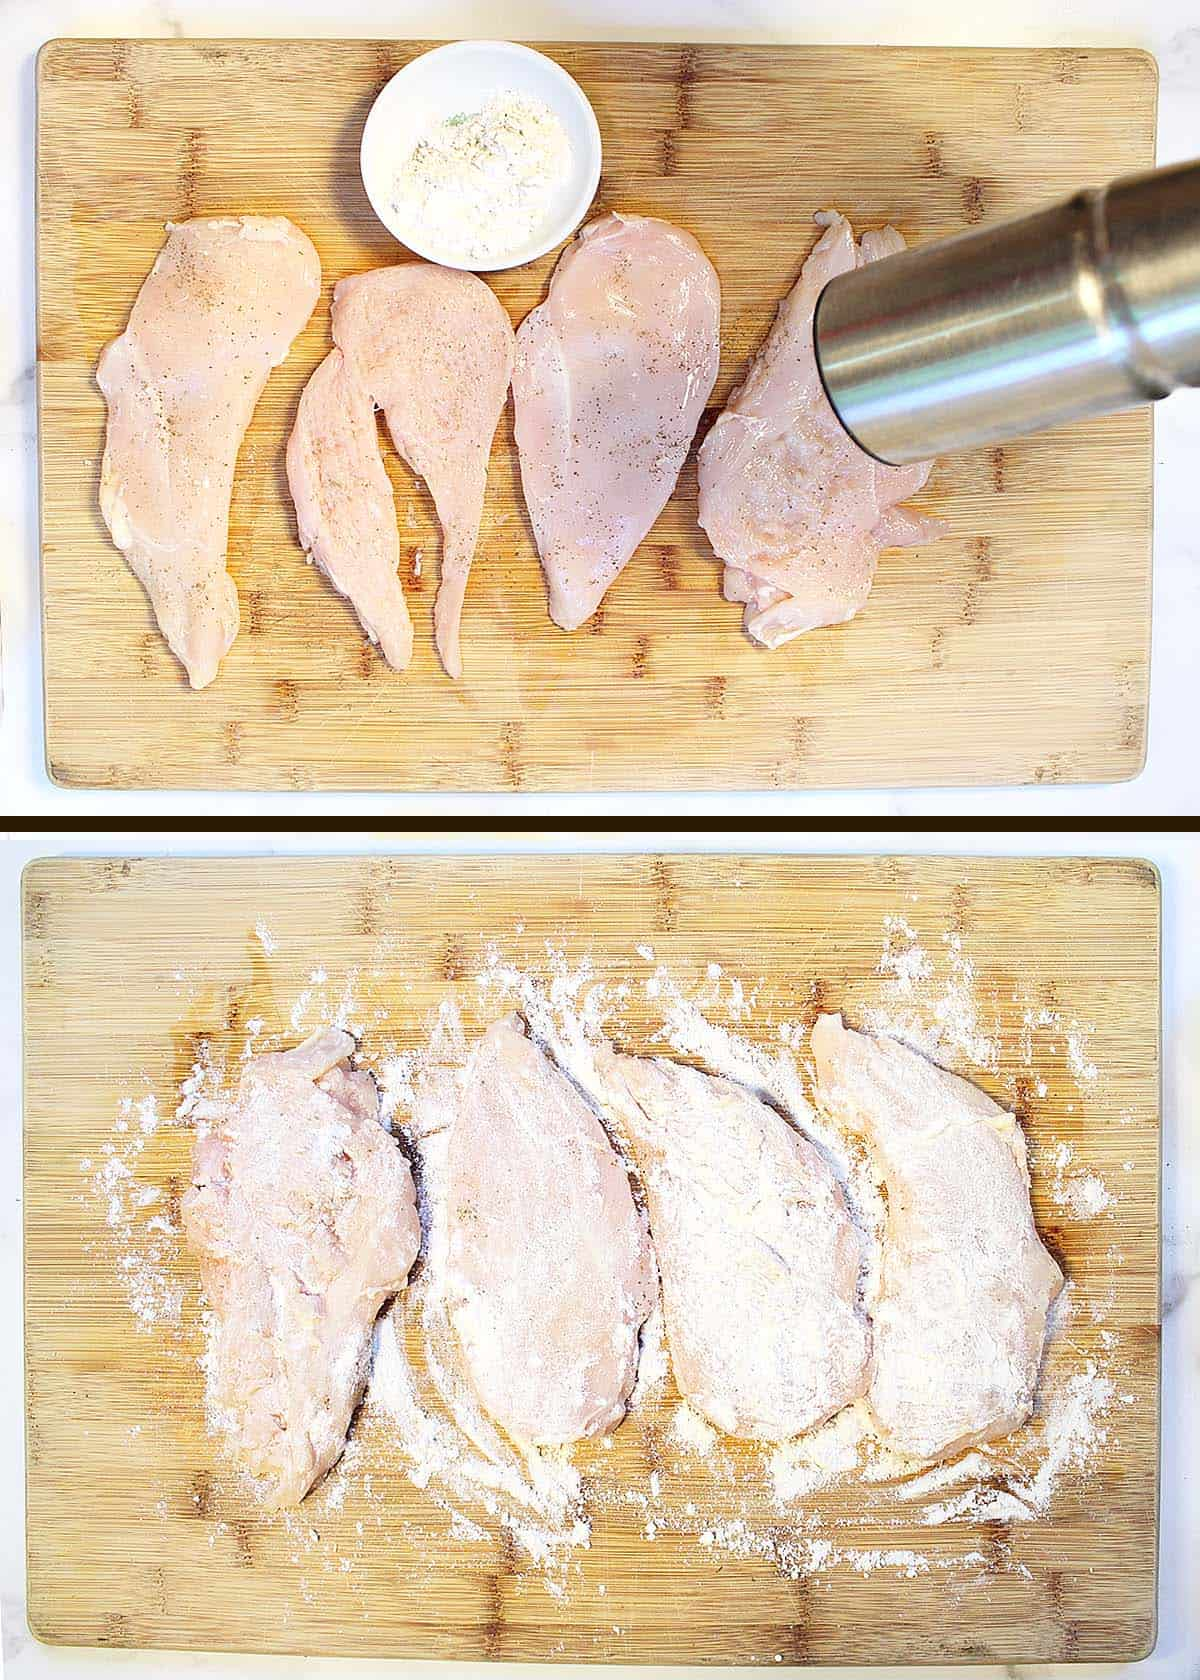 Prepping chicken on wooden cutting board.